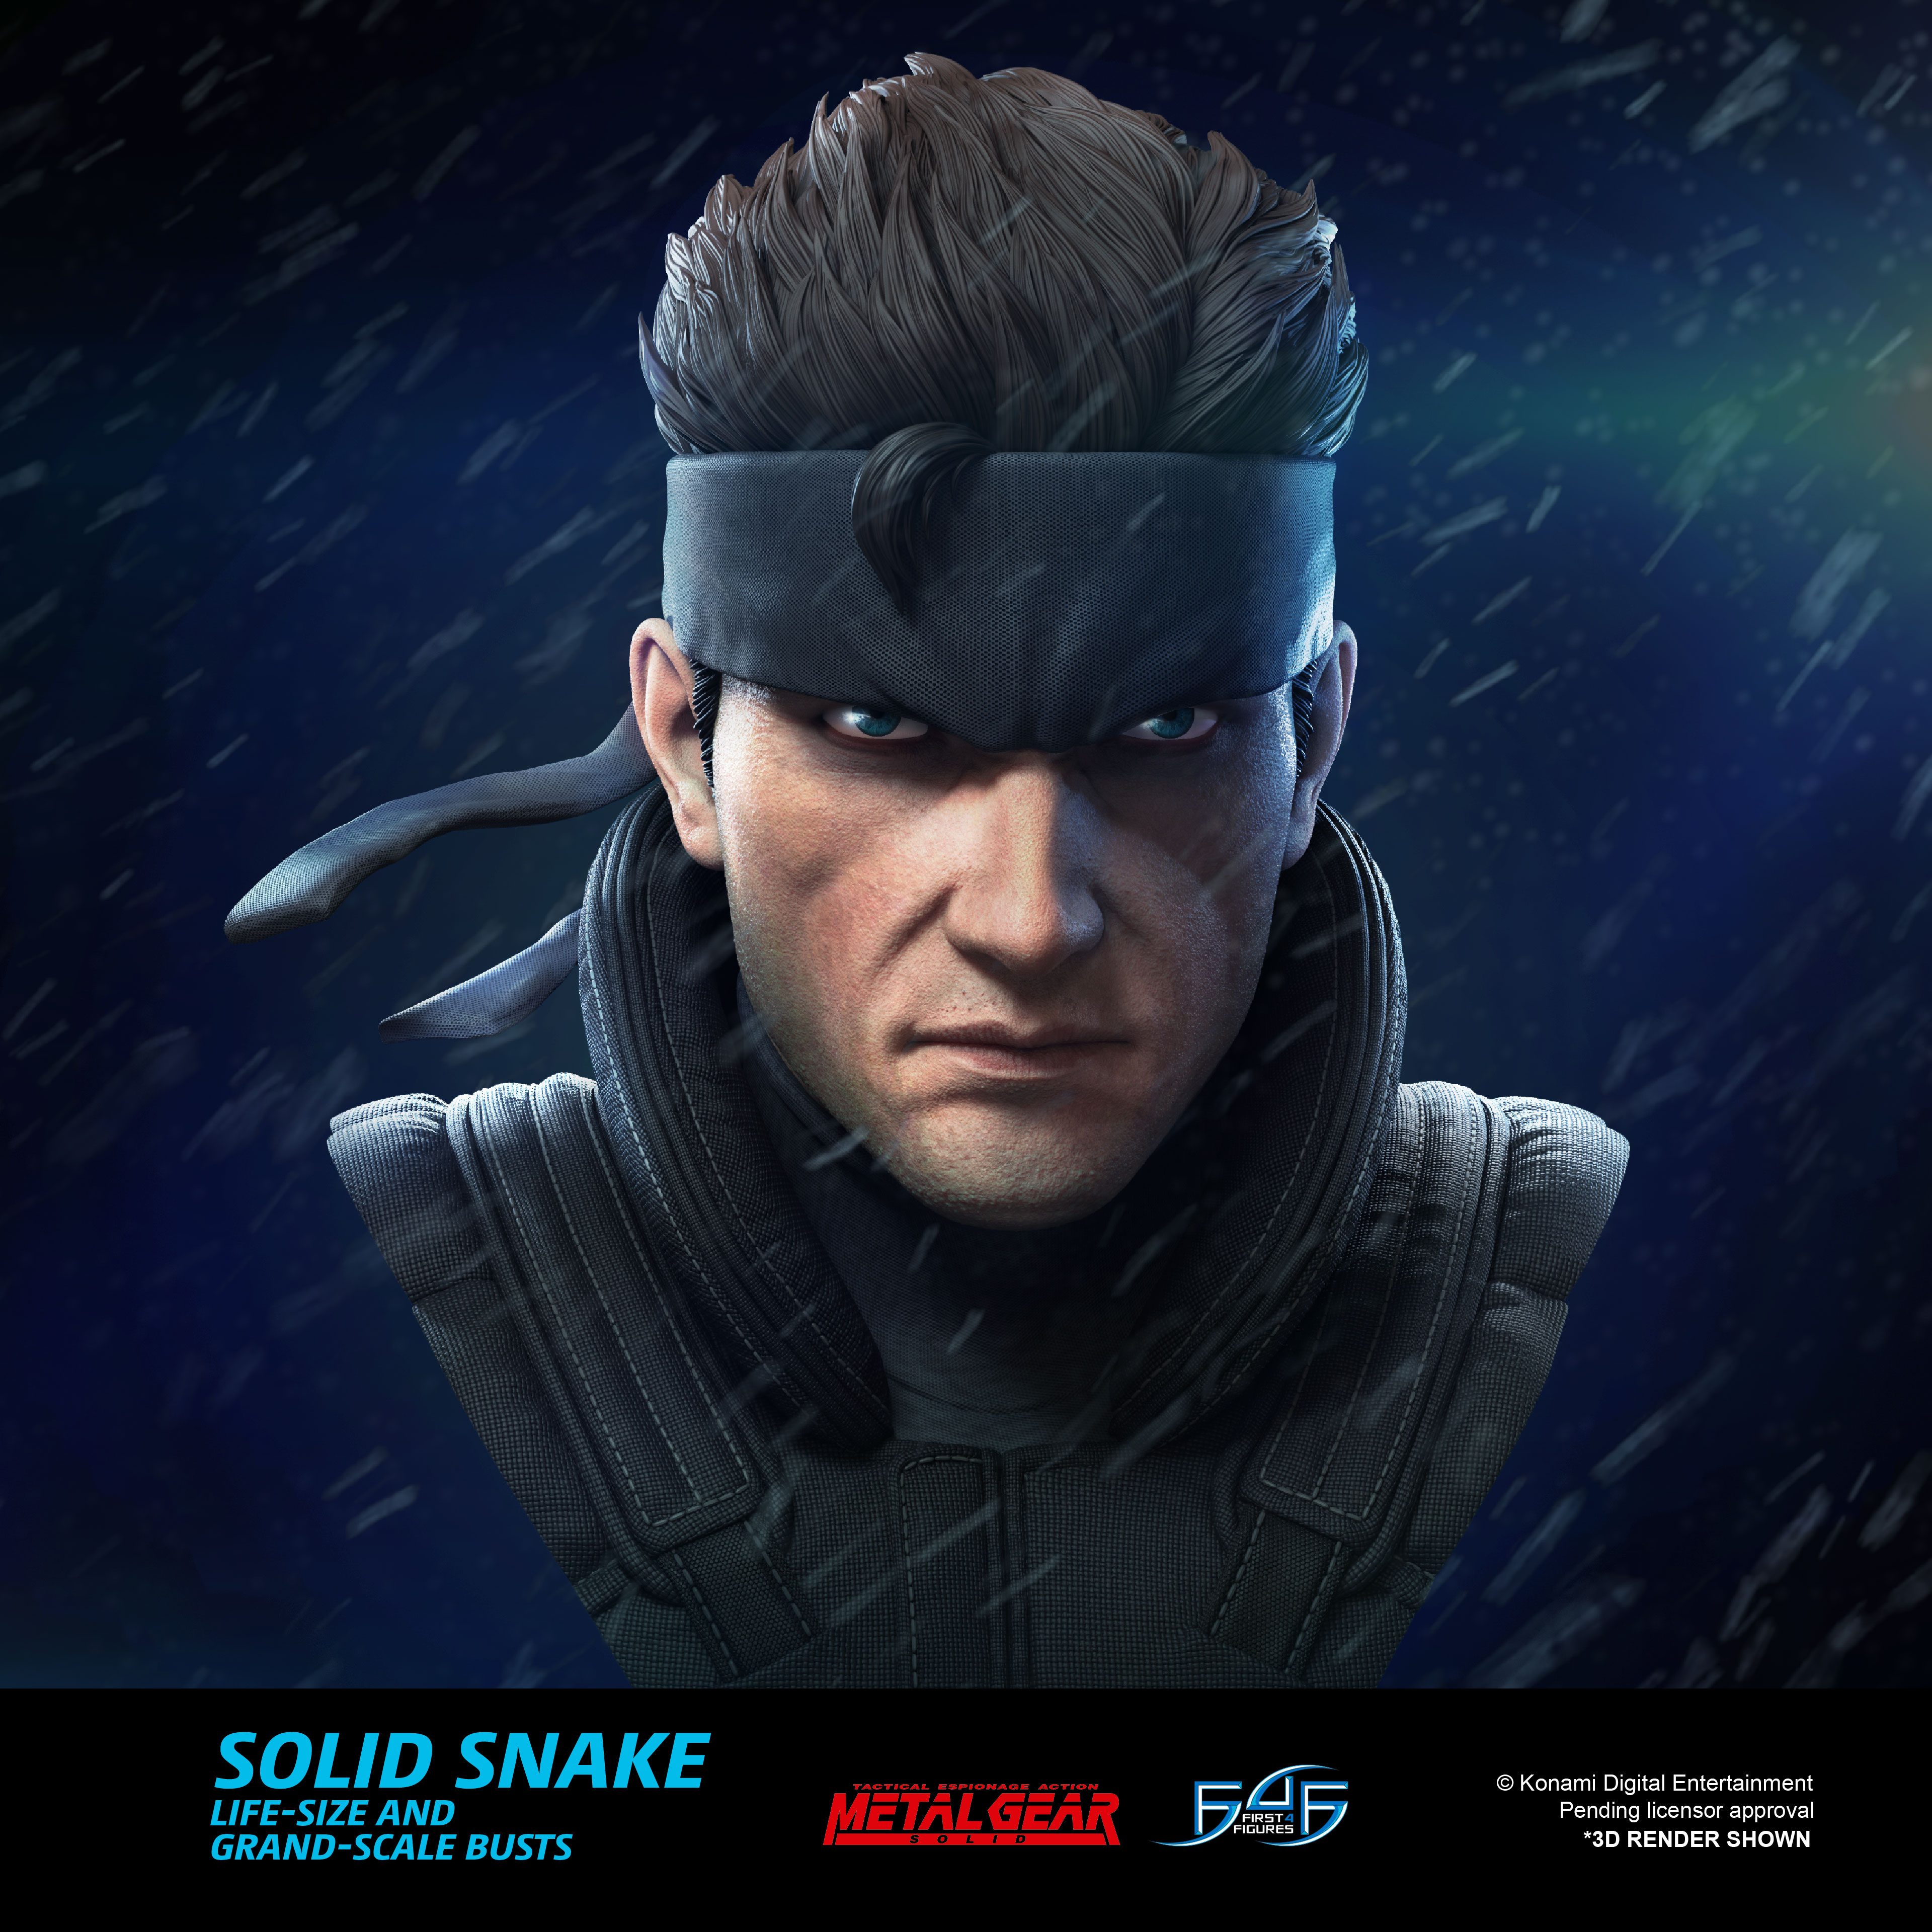 A First Look at First 4 Figures' Metal Gear Solid – Solid Snake Bust Statue